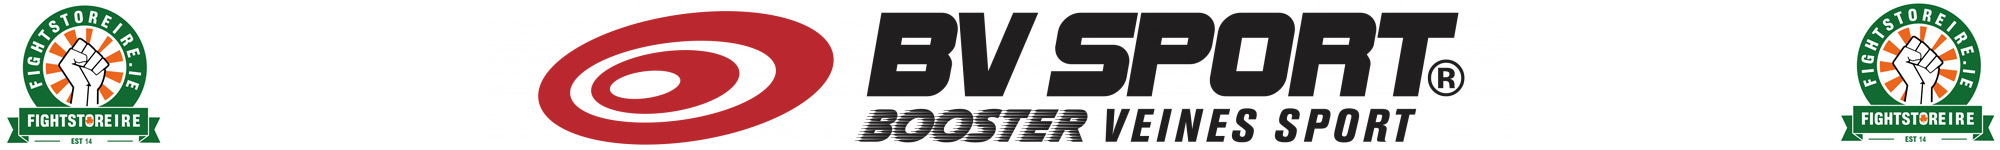 BV Sport from Fightstore Ireland